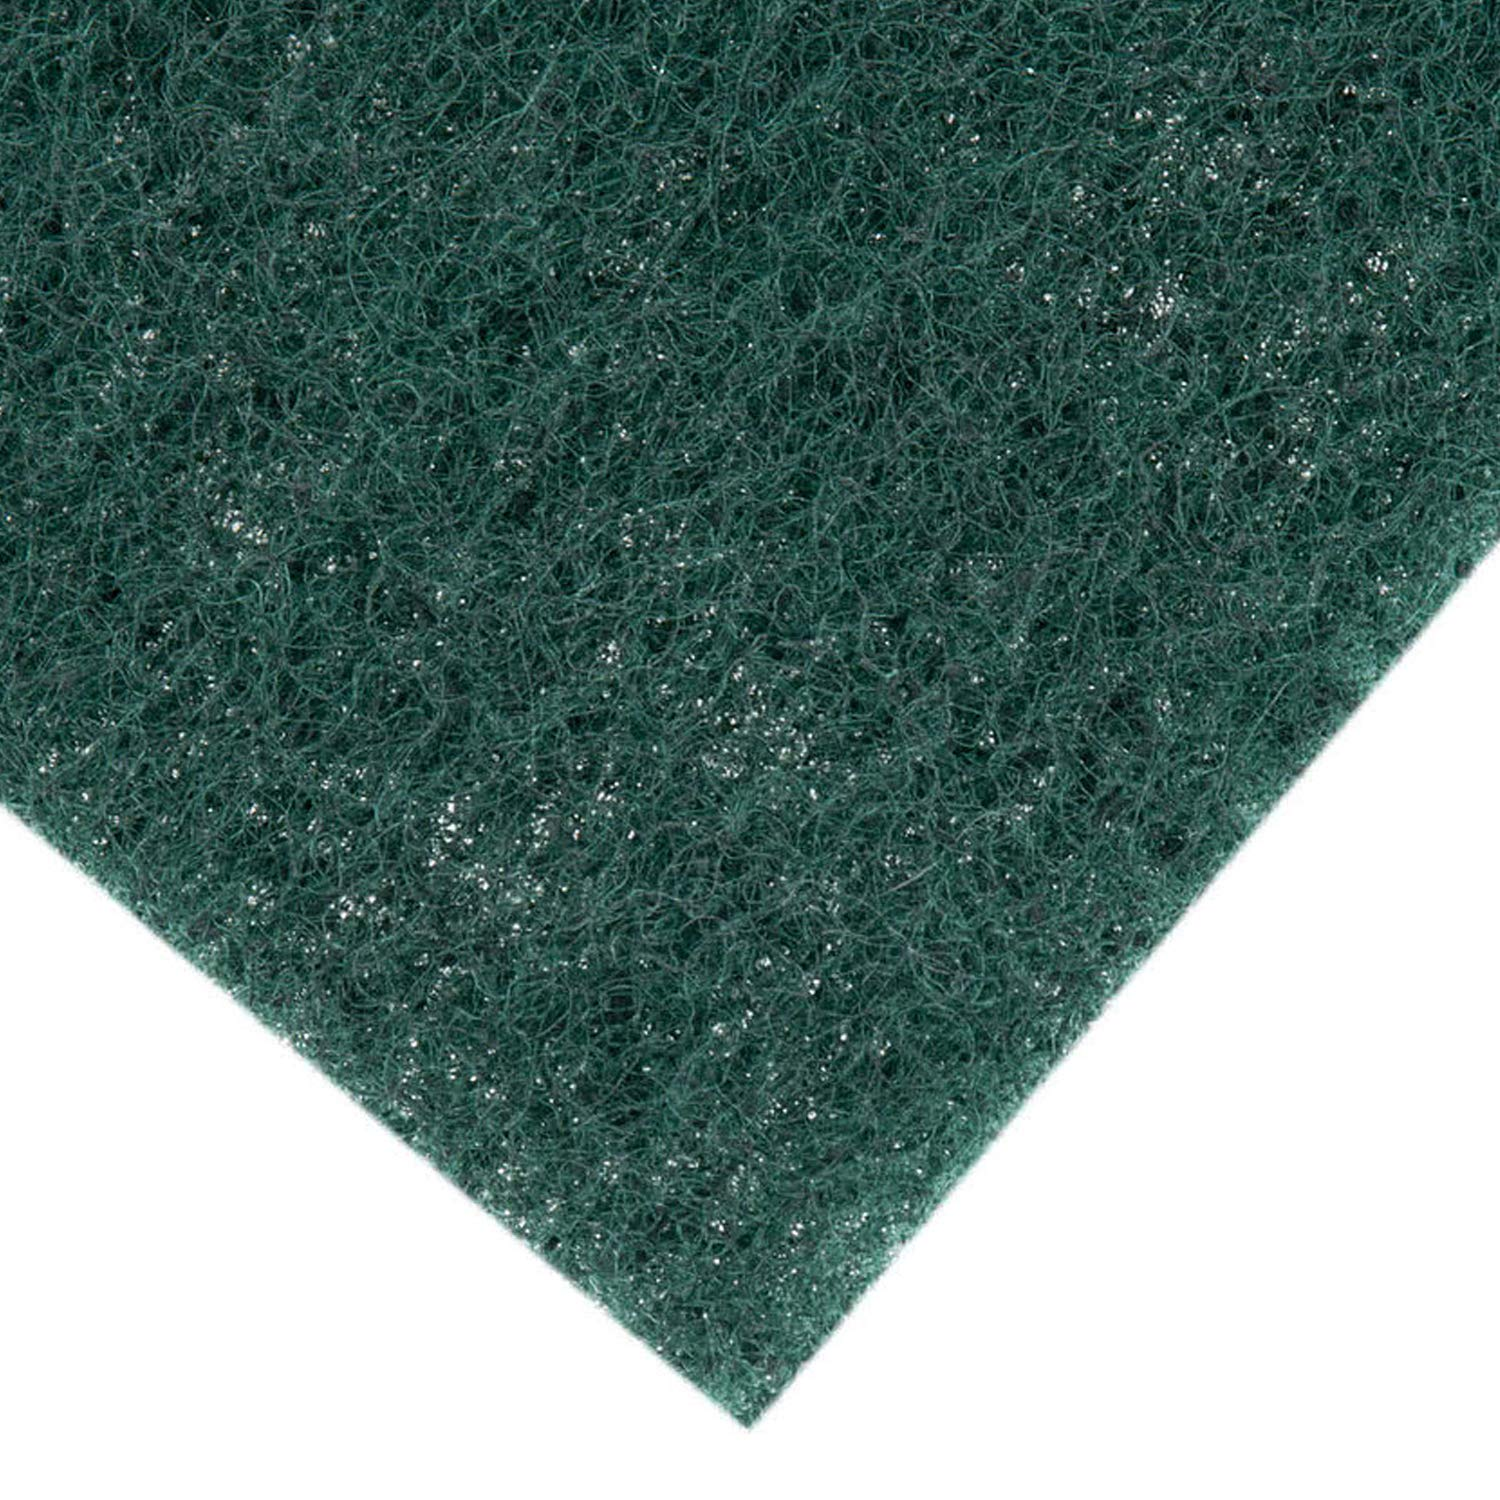 HeRO Dish Scrubber Scouring Pads - Household Scrub Pads for Stove Top Cleaner and Kitchen Scrubbers for Dishes, Cuts Solvents & Greasy Messes, Green 4.5 x 6 inch (Pack of 40)          by HERO IMPORTS (Image #8)